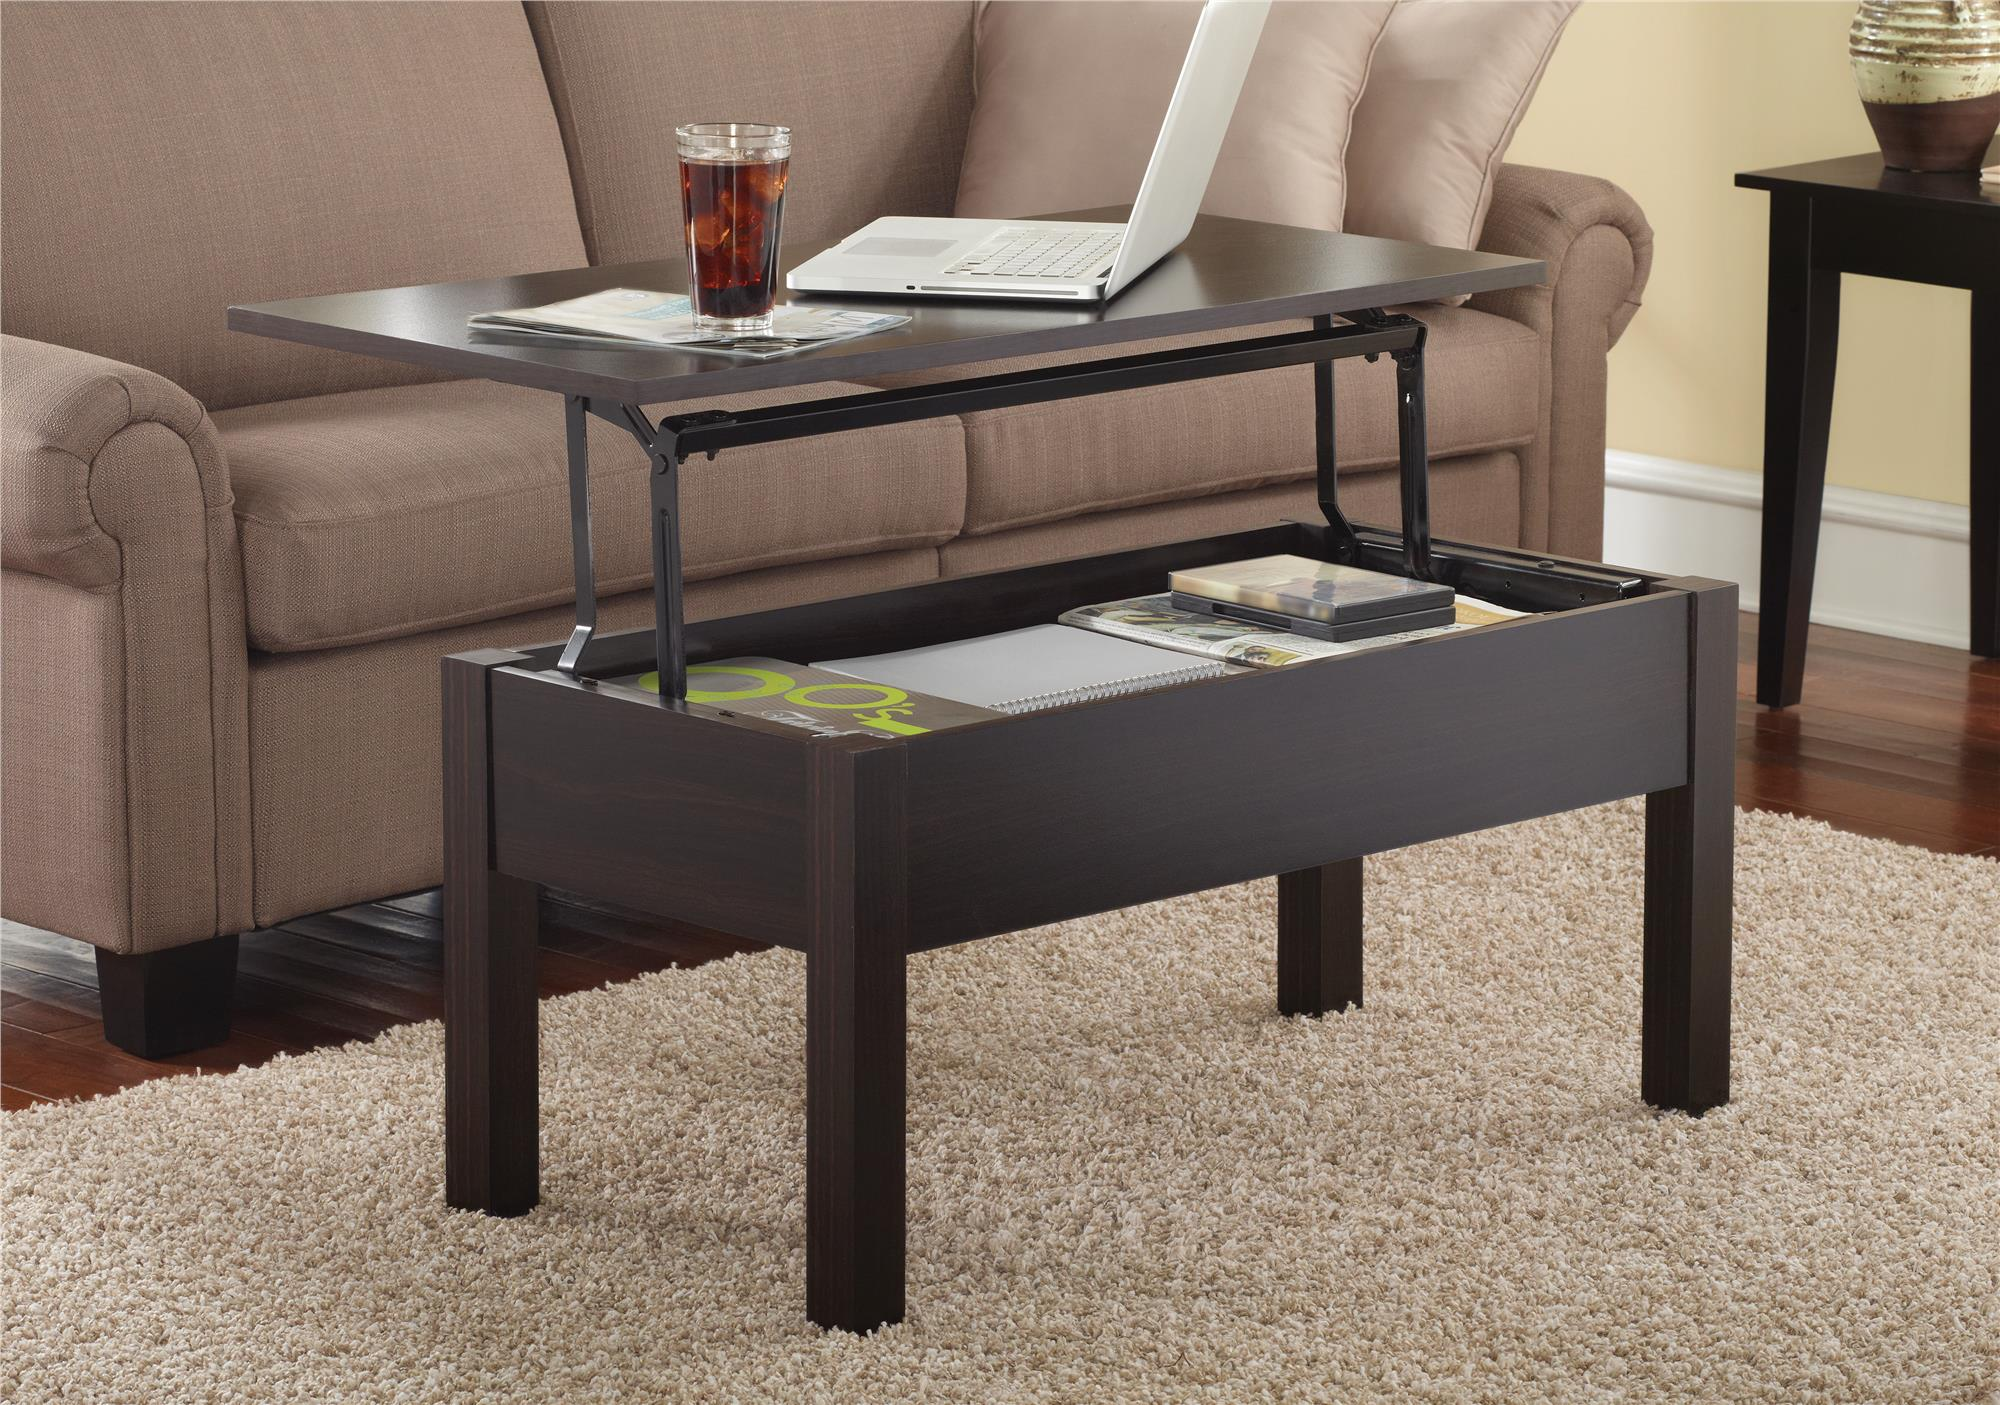 Mainstays Lift Top Coffee Table, Multiple Colors